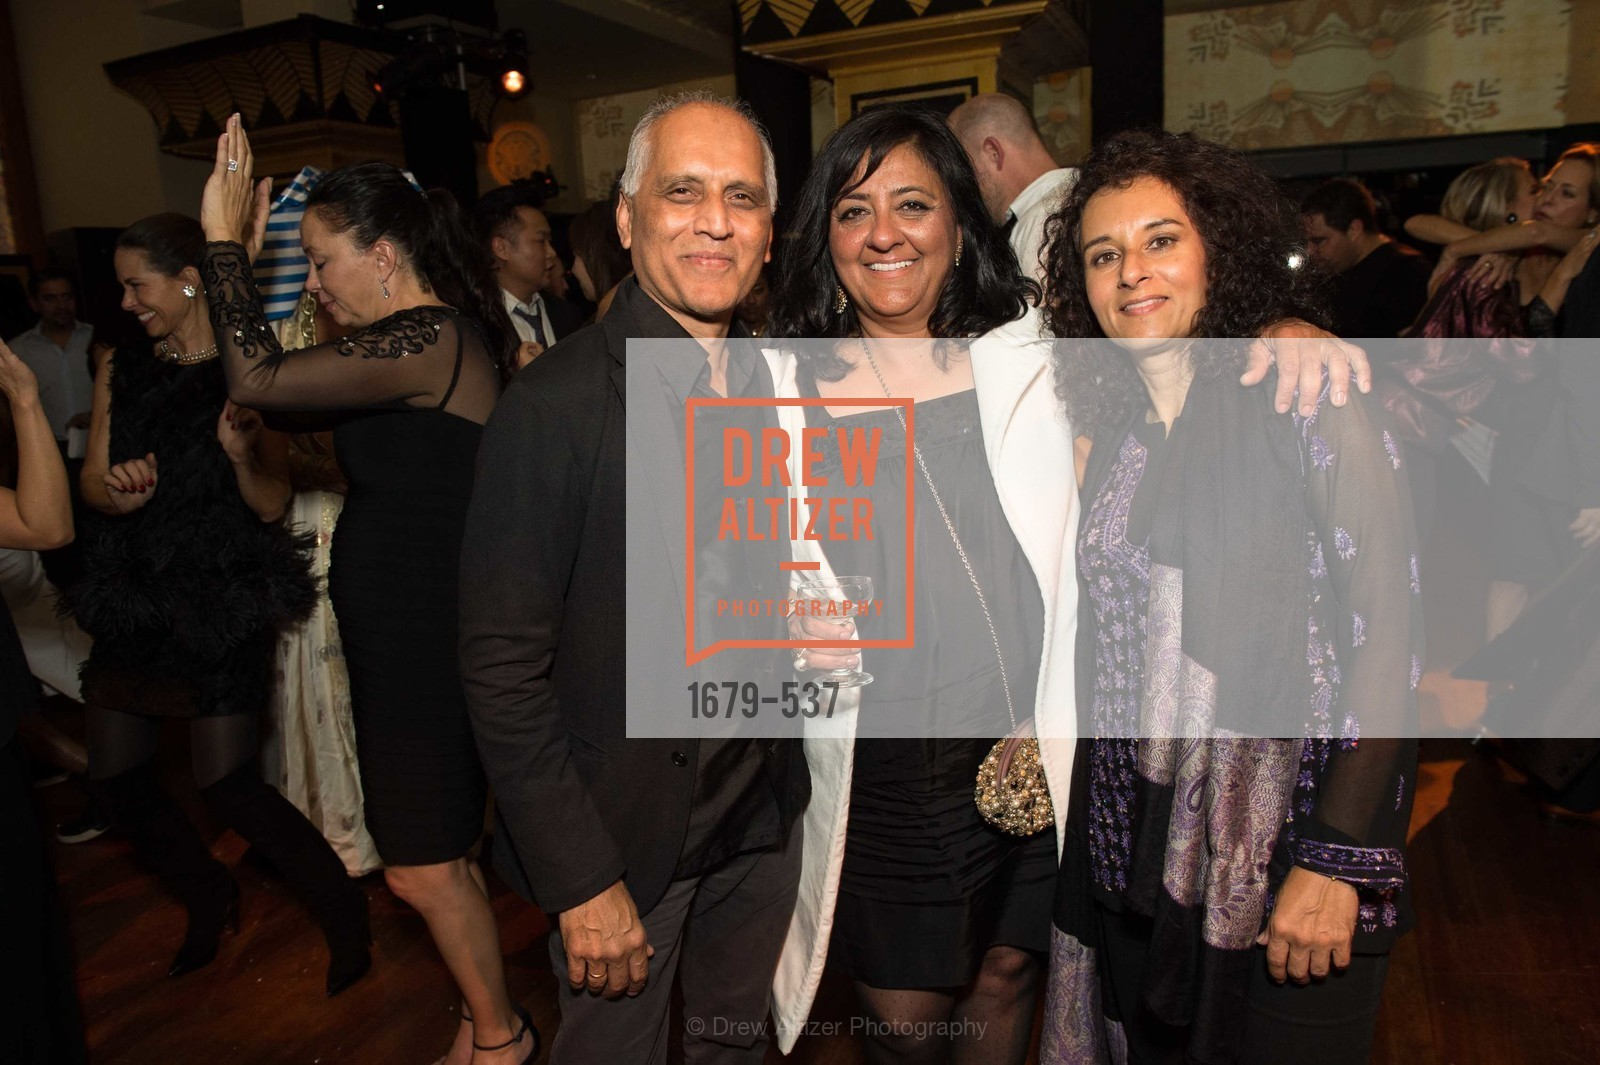 Zadir Sardar, TOP OF THE MARK'S 75TH Anniversary Party, US, November 6th, 2014,Drew Altizer, Drew Altizer Photography, full-service agency, private events, San Francisco photographer, photographer california